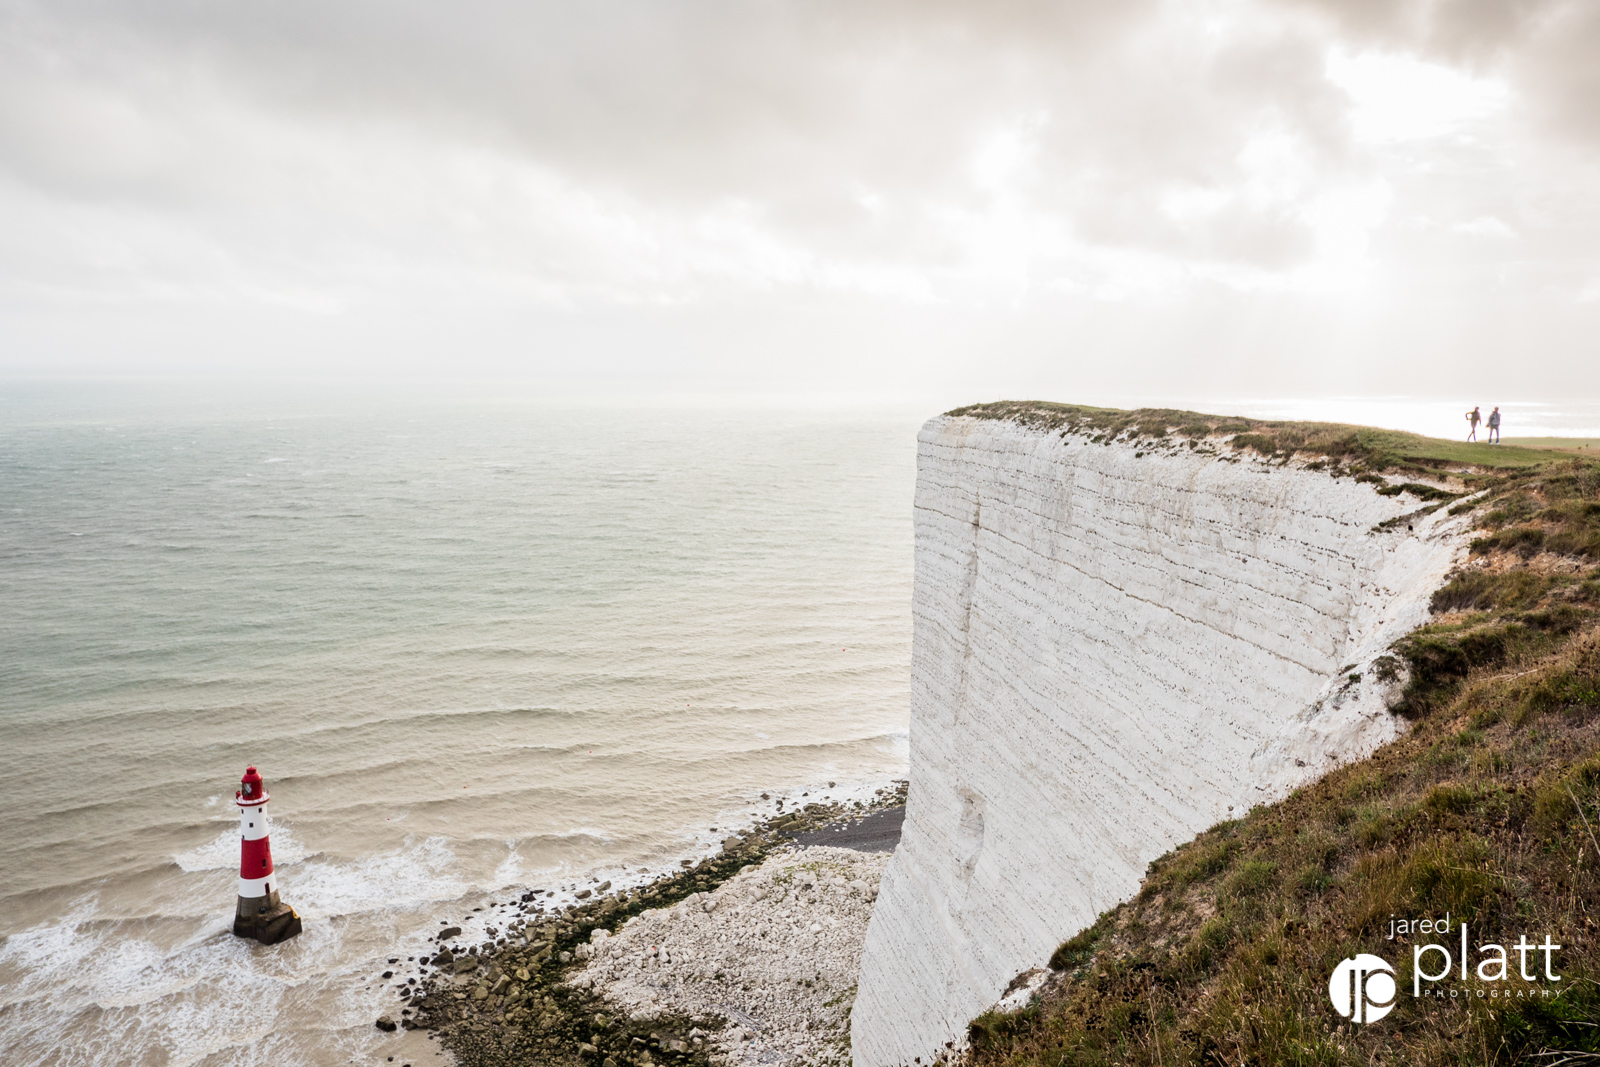 The white cliffs made for a stunning coastline.